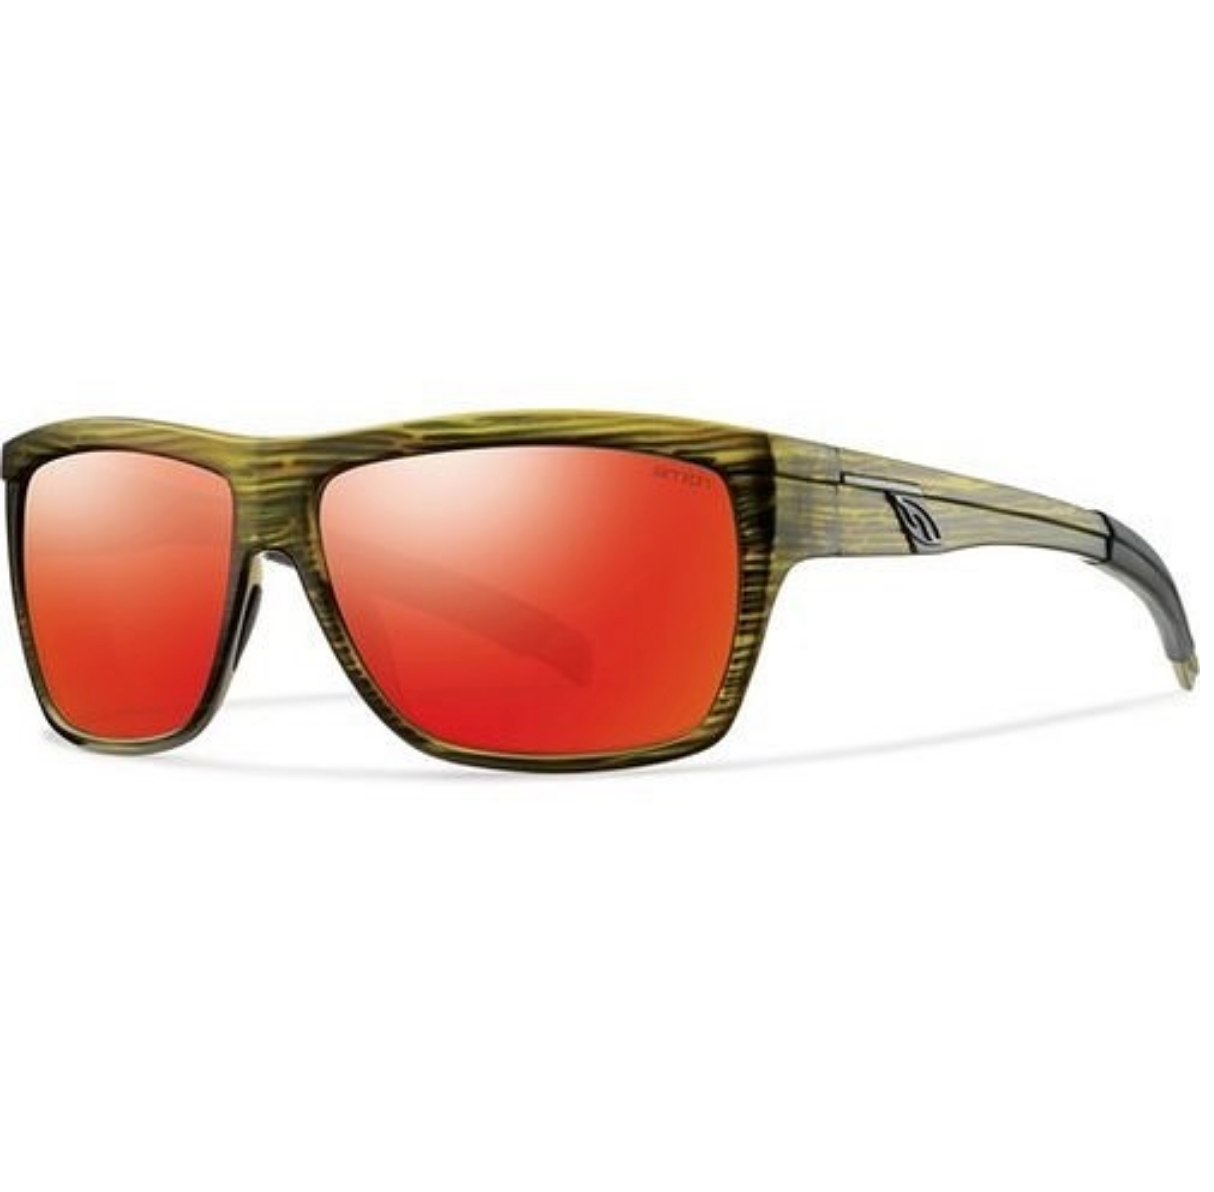 SMITH OPTICS MASTERMIND SUNGLASSES WITH SOL-X LENS